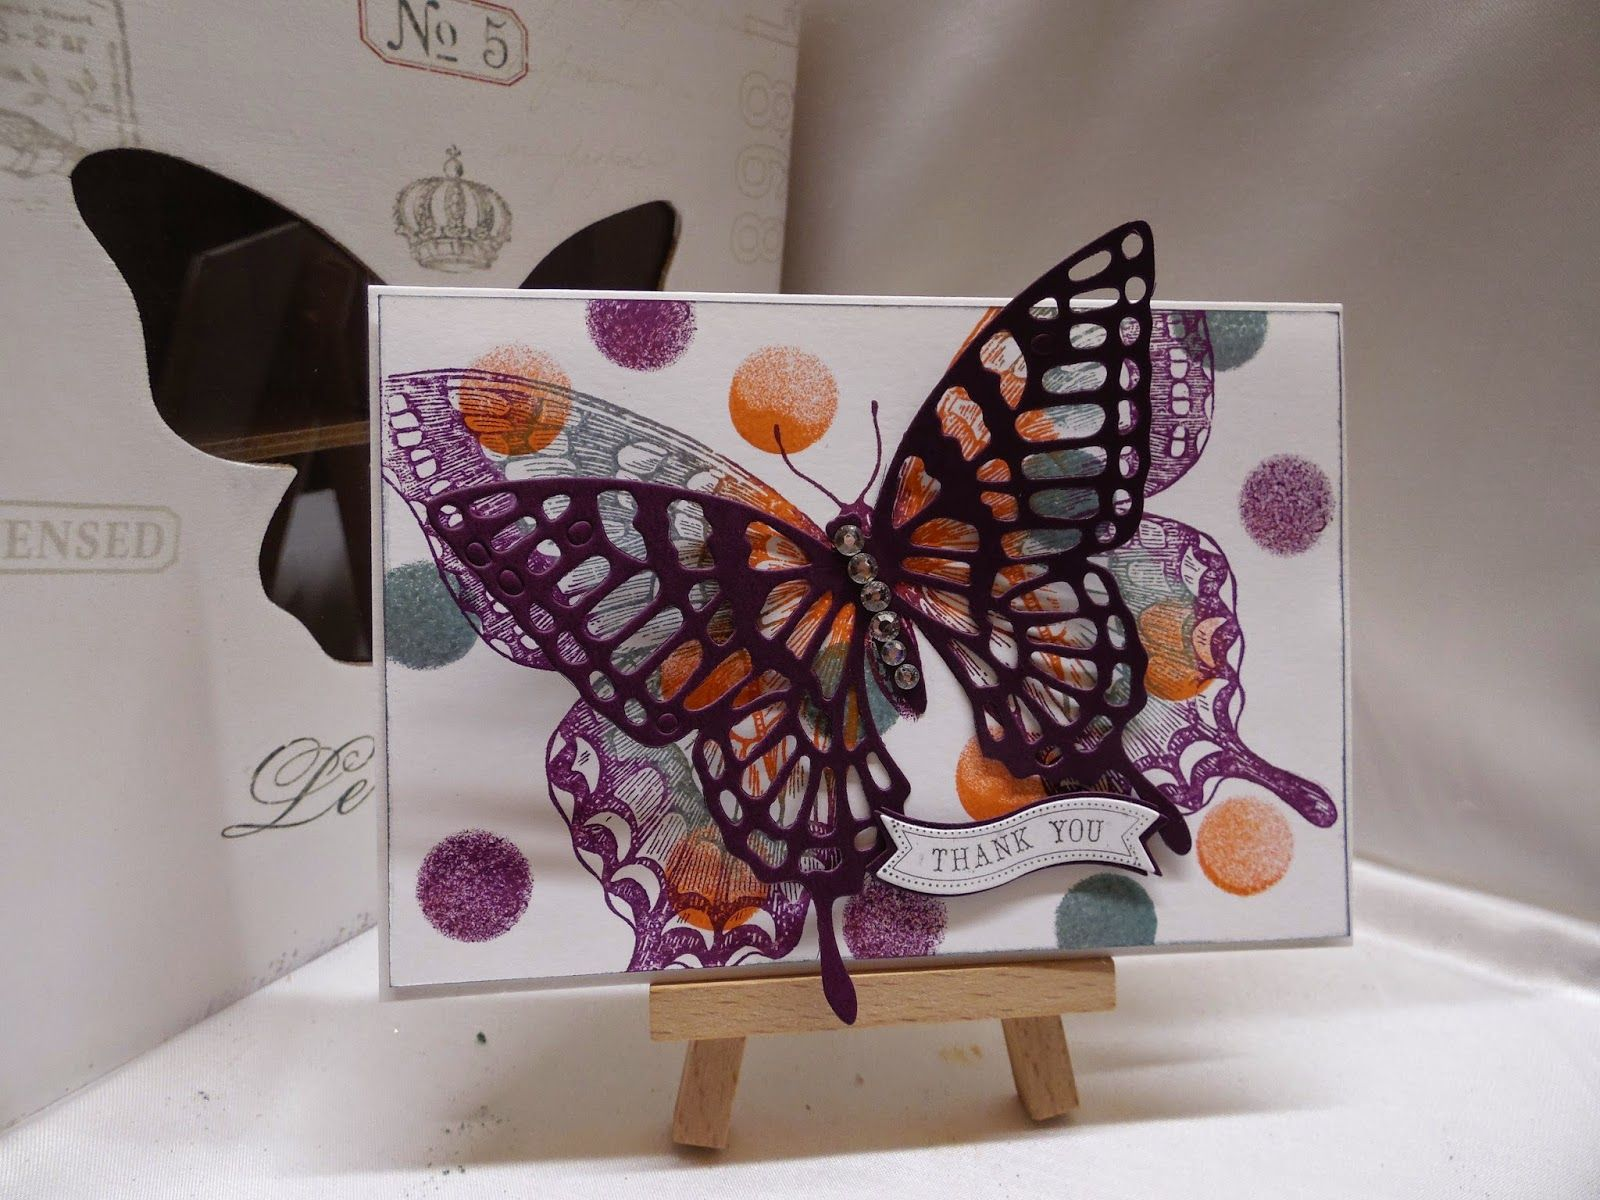 Stampin Up at The Warren: February 2015; Butterfly Framelits, Bitty Banners Framelits, Swallowtail Stamp, Itty Bitty Banners Stamp Set